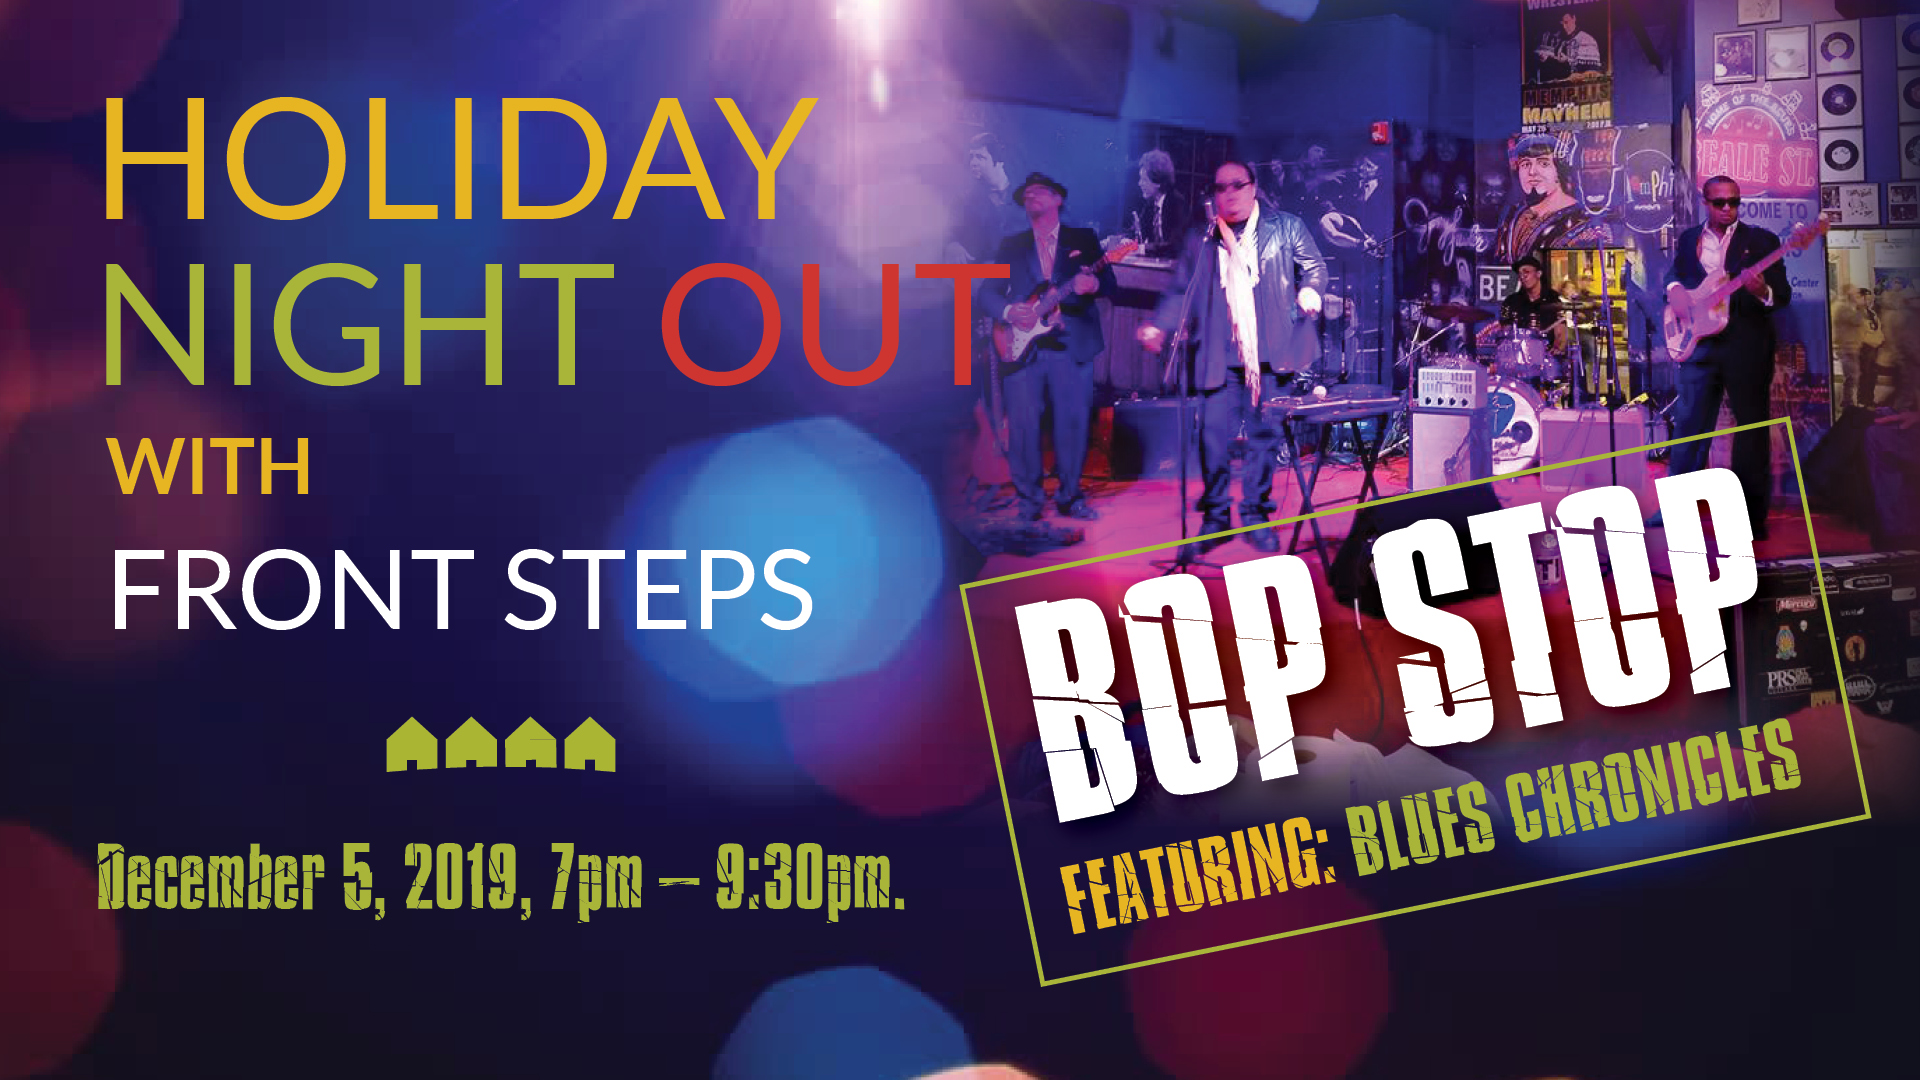 Bop Stop Holiday